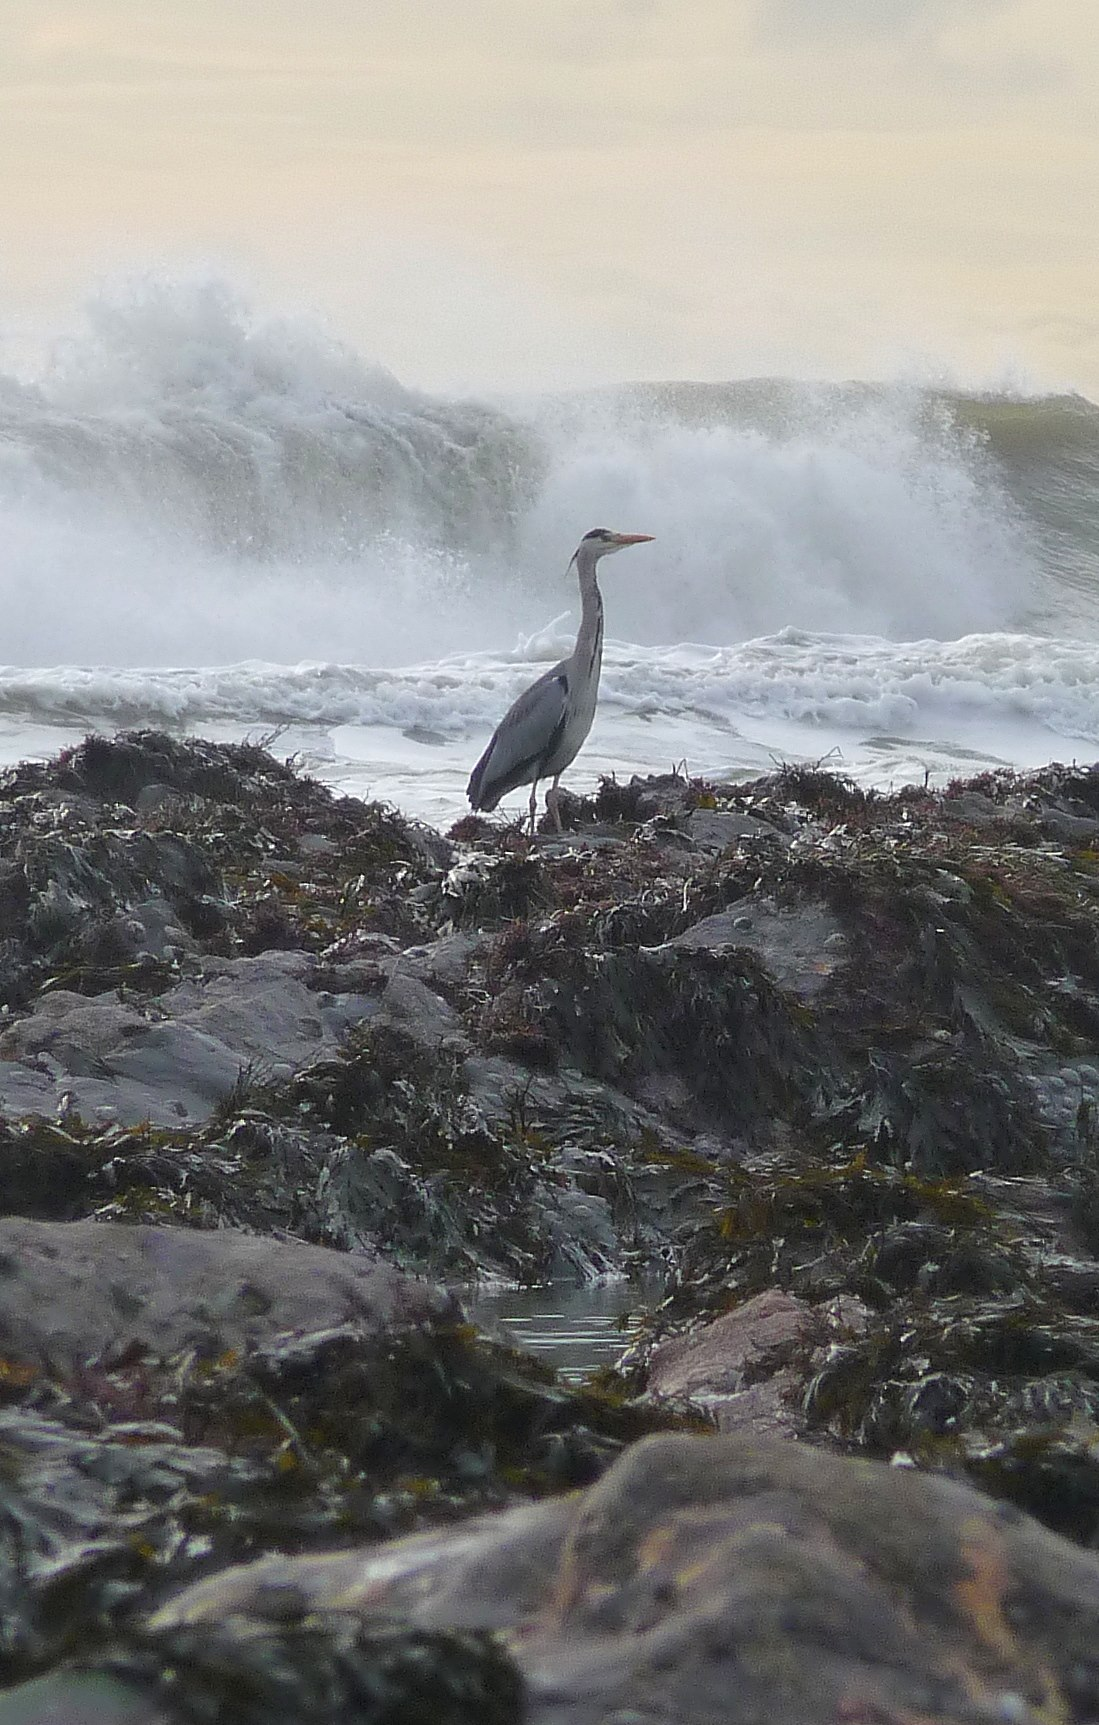 A large bird stands on seaweed covered rocks with waves crashing in the background